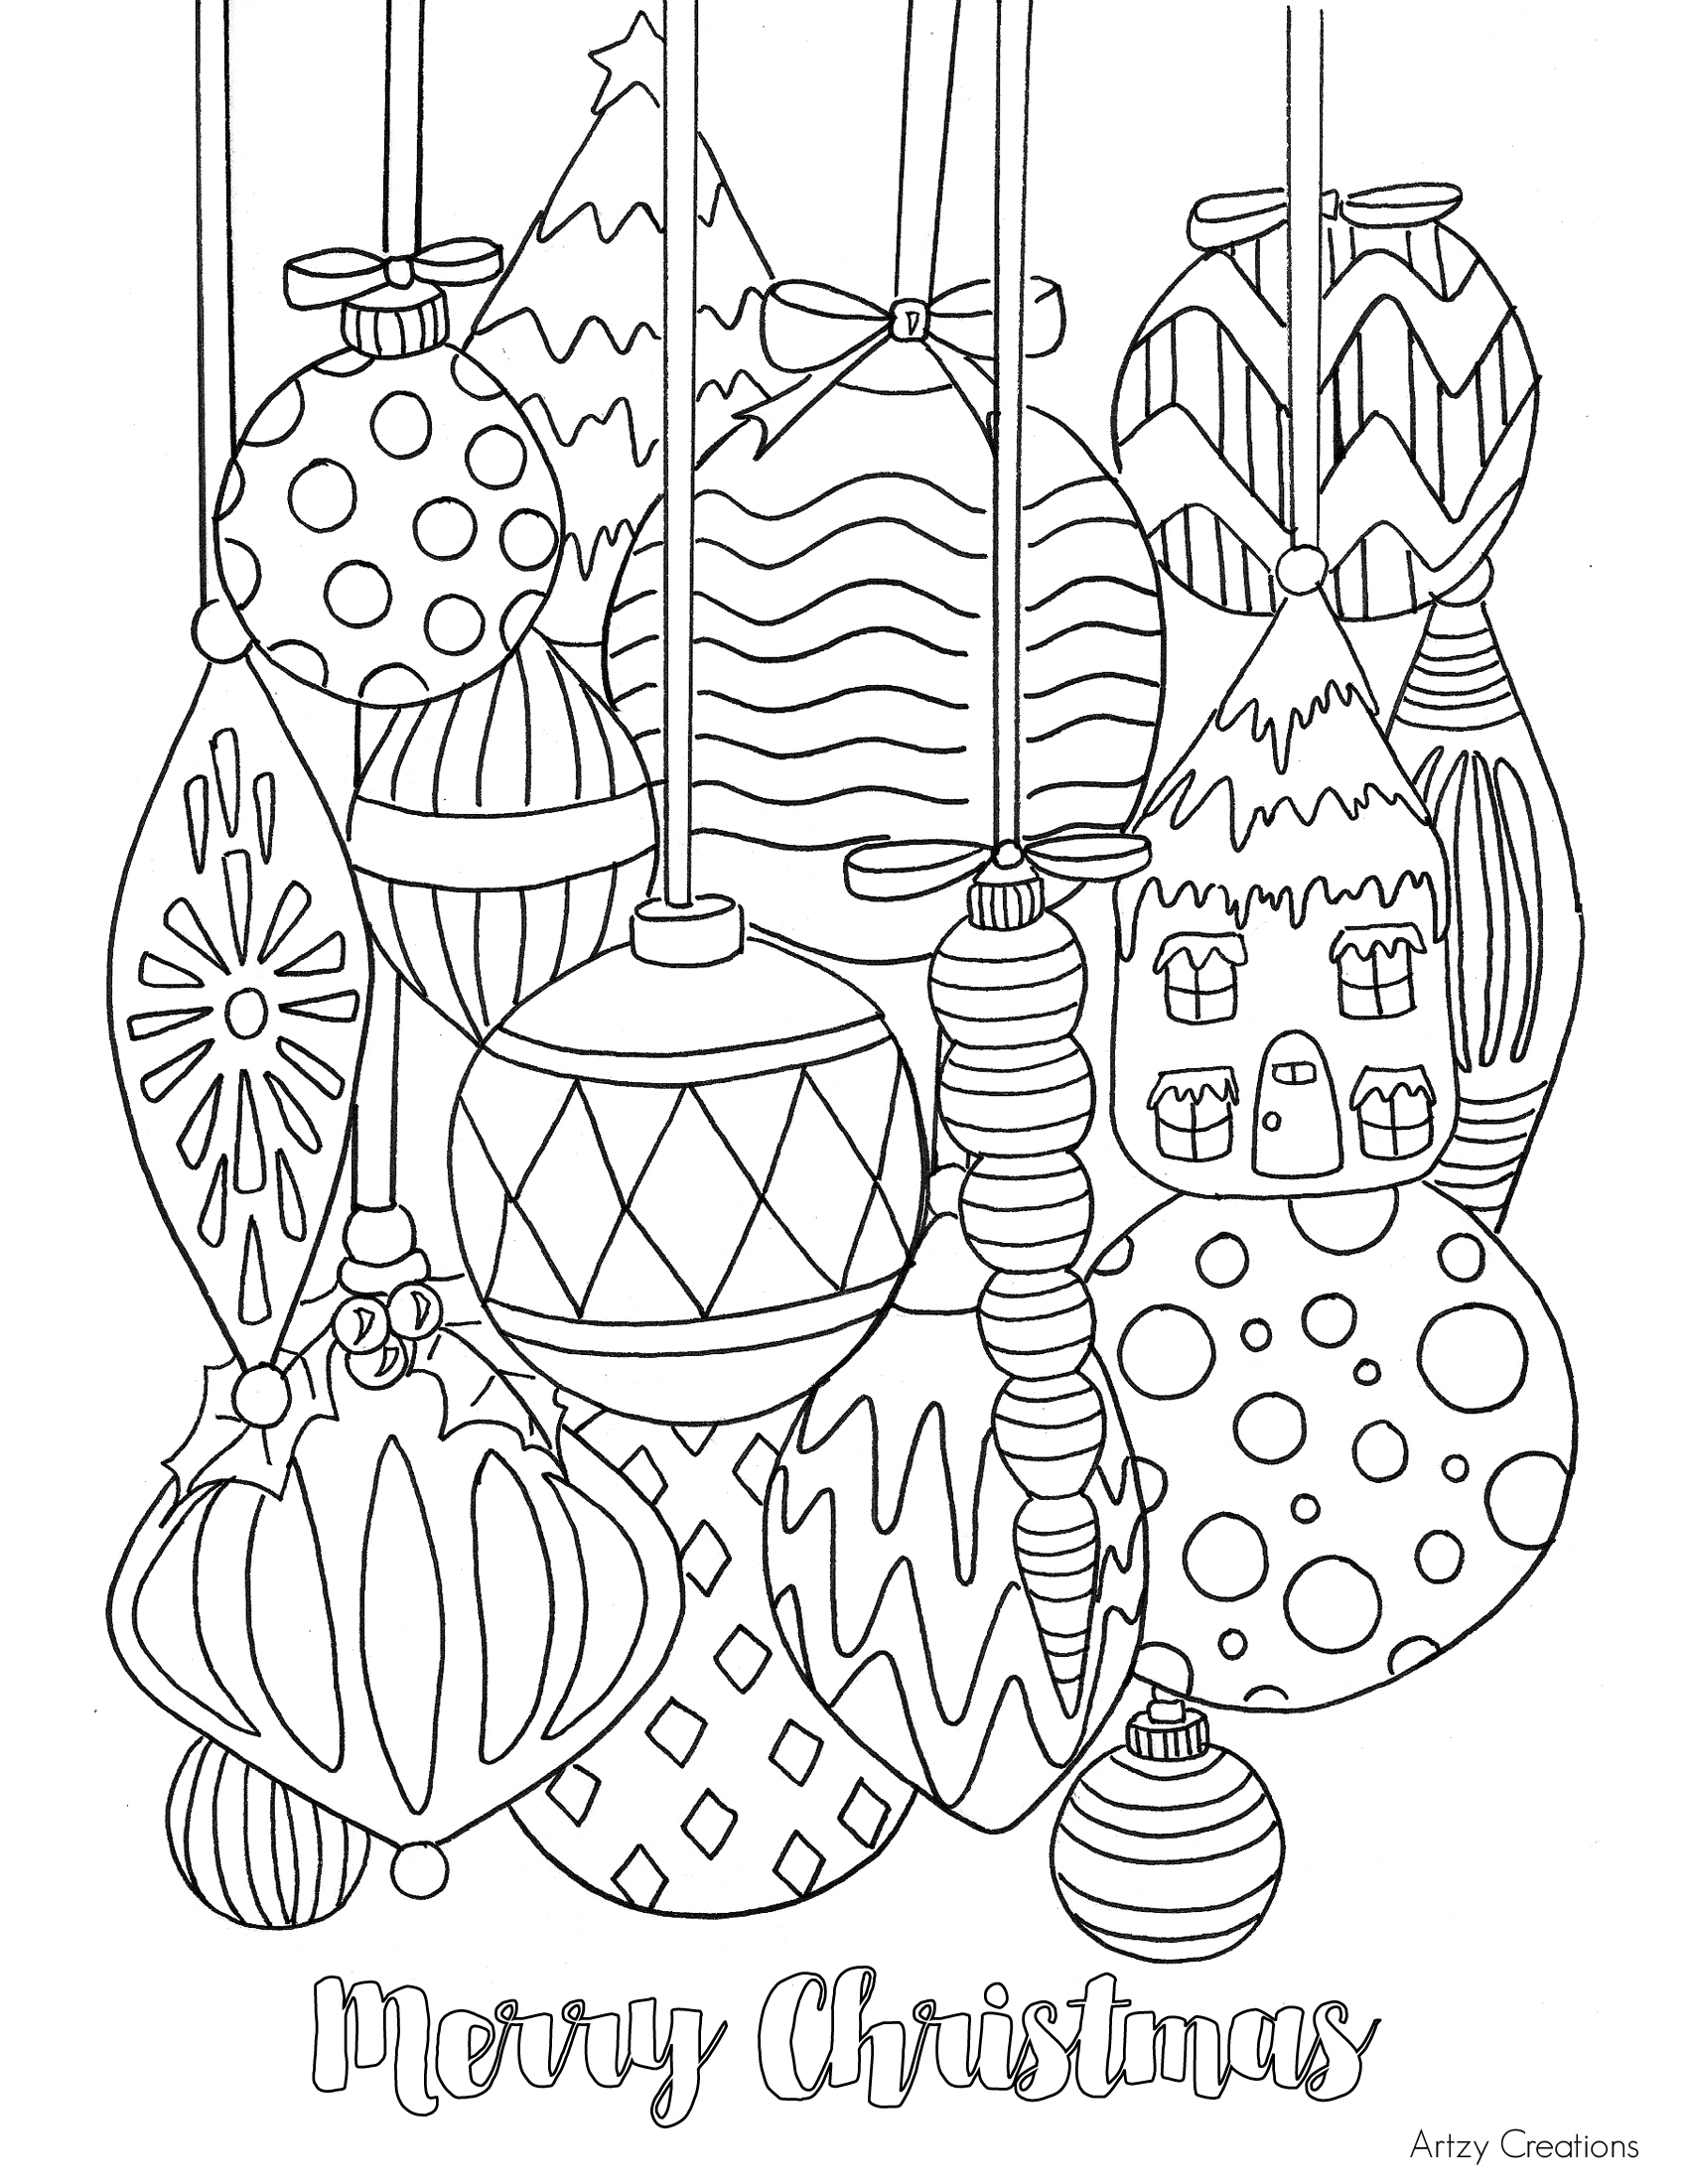 Coloring Pages About Christmas With Adult To Print Free Books